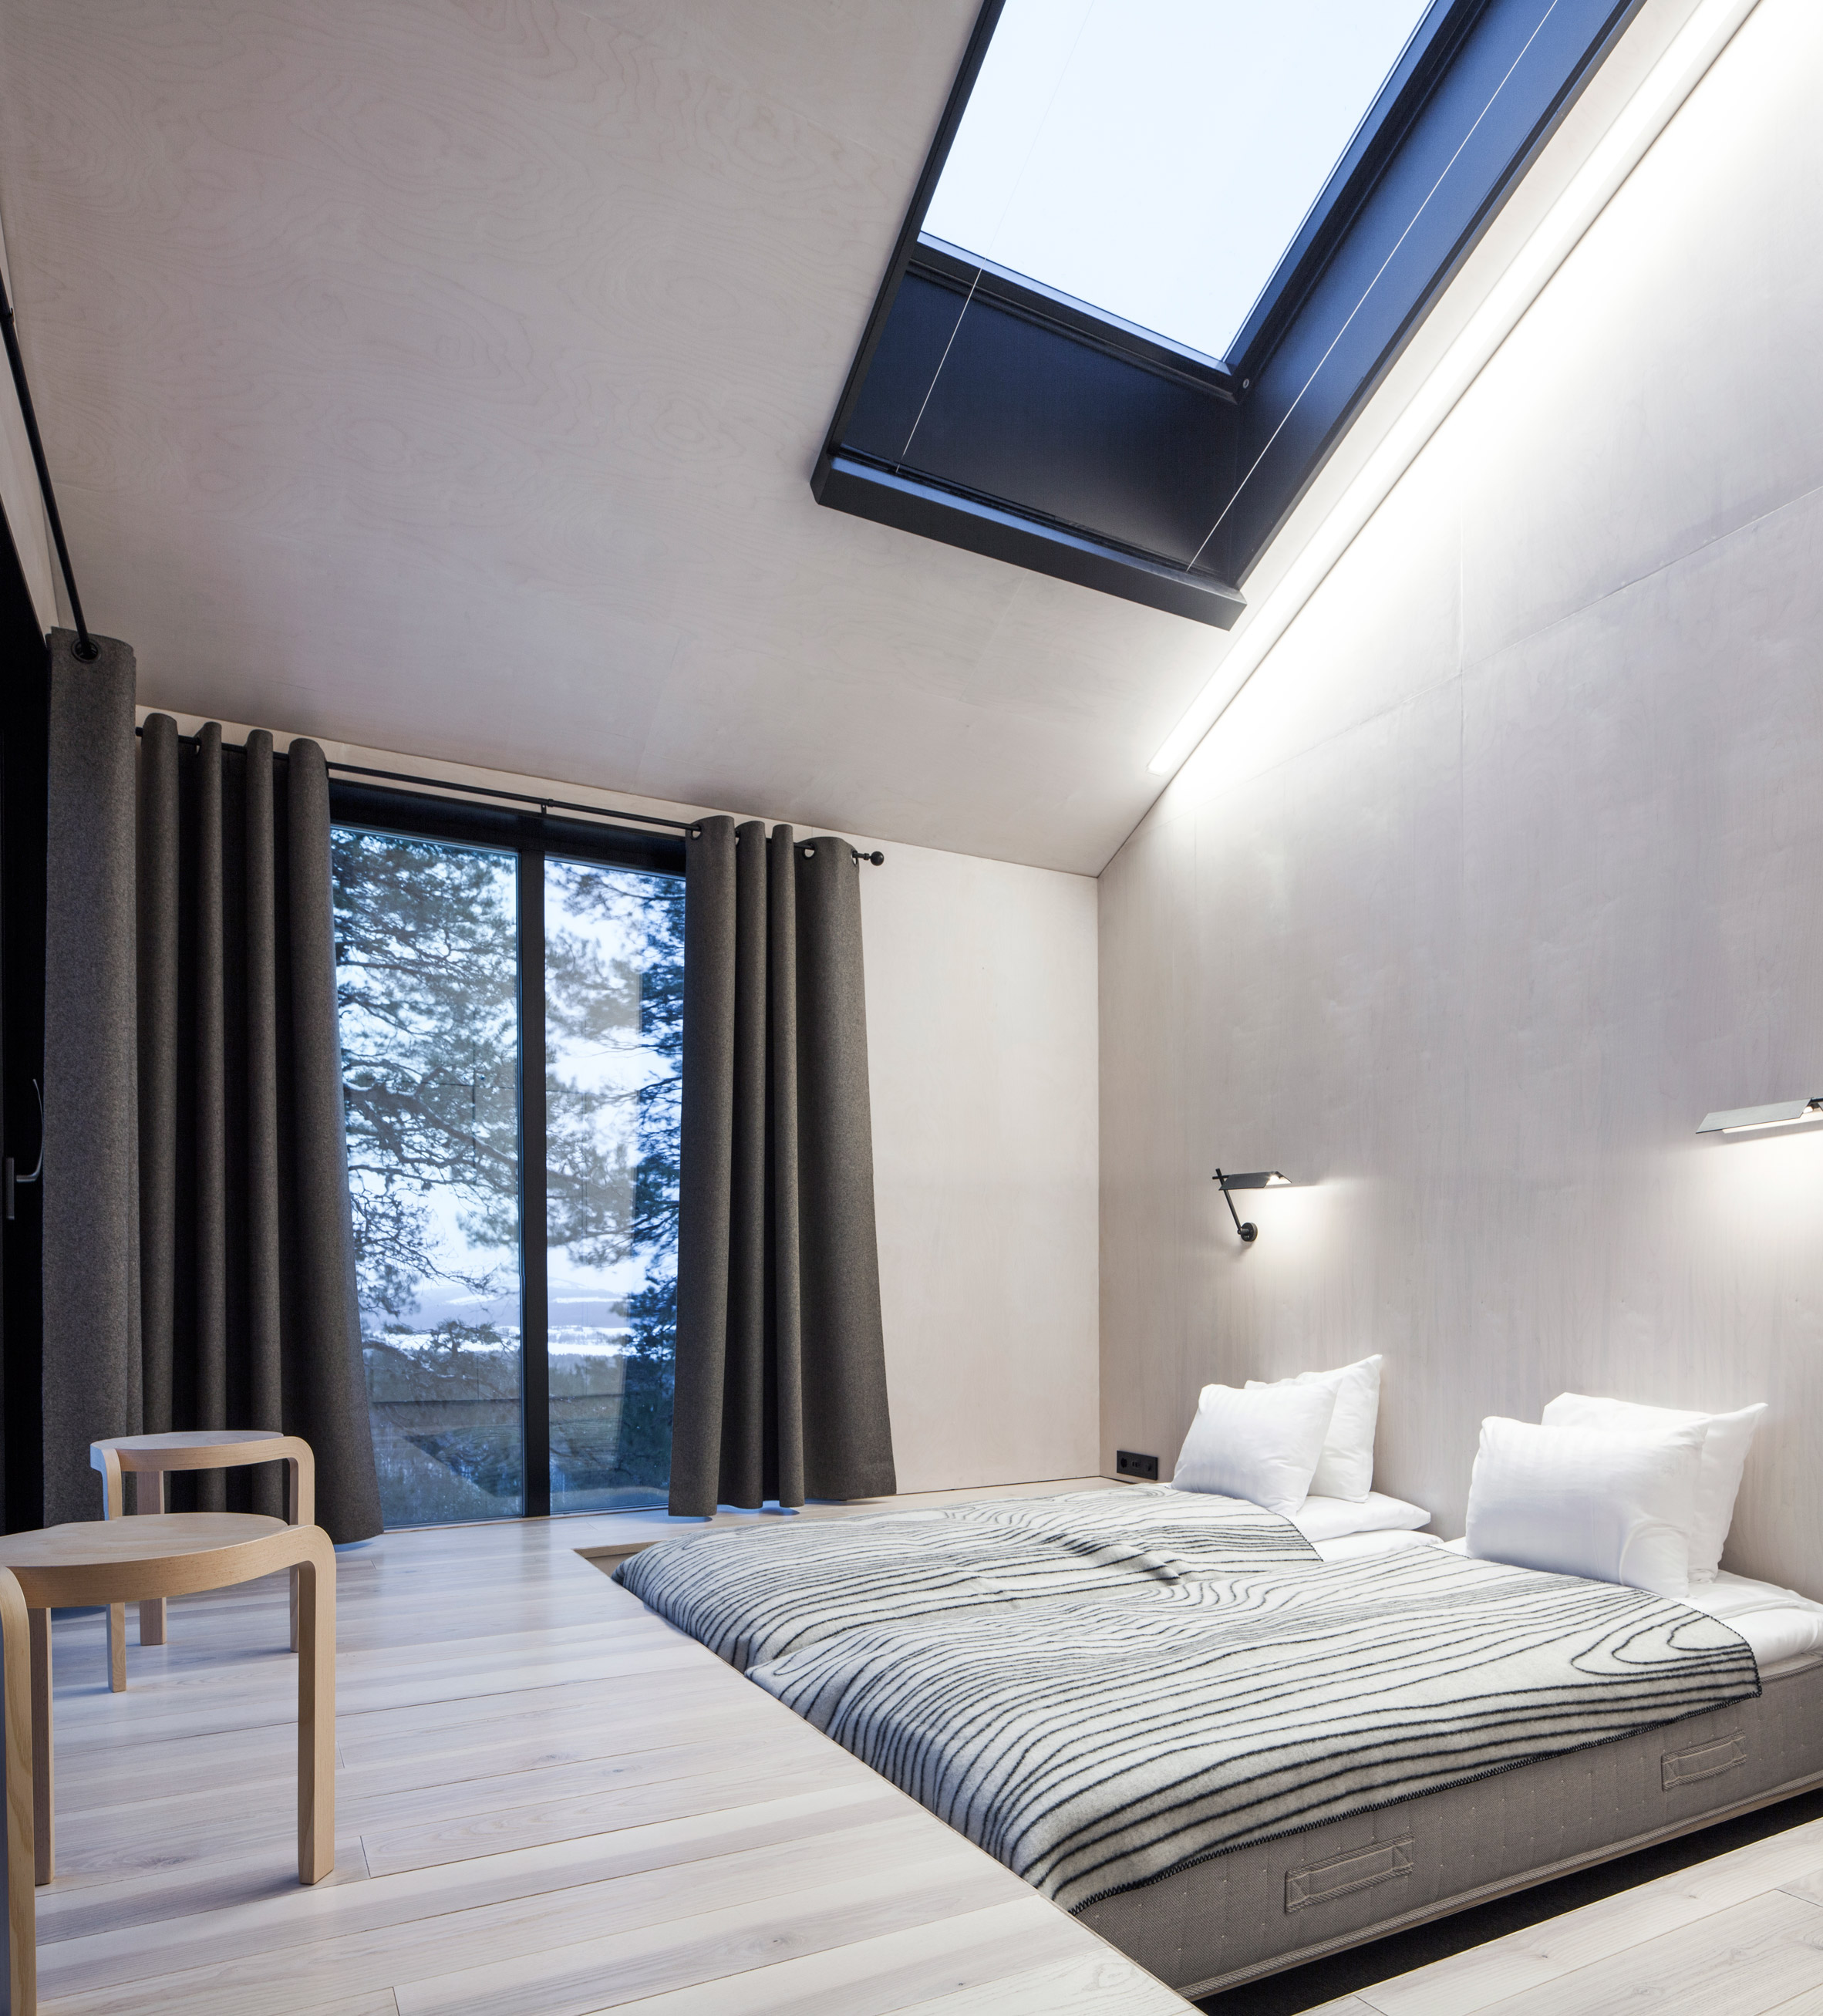 the-7th-room-tree-hotel-snohetta-sweden-architecture_dezeen_2364_col_19.jpg